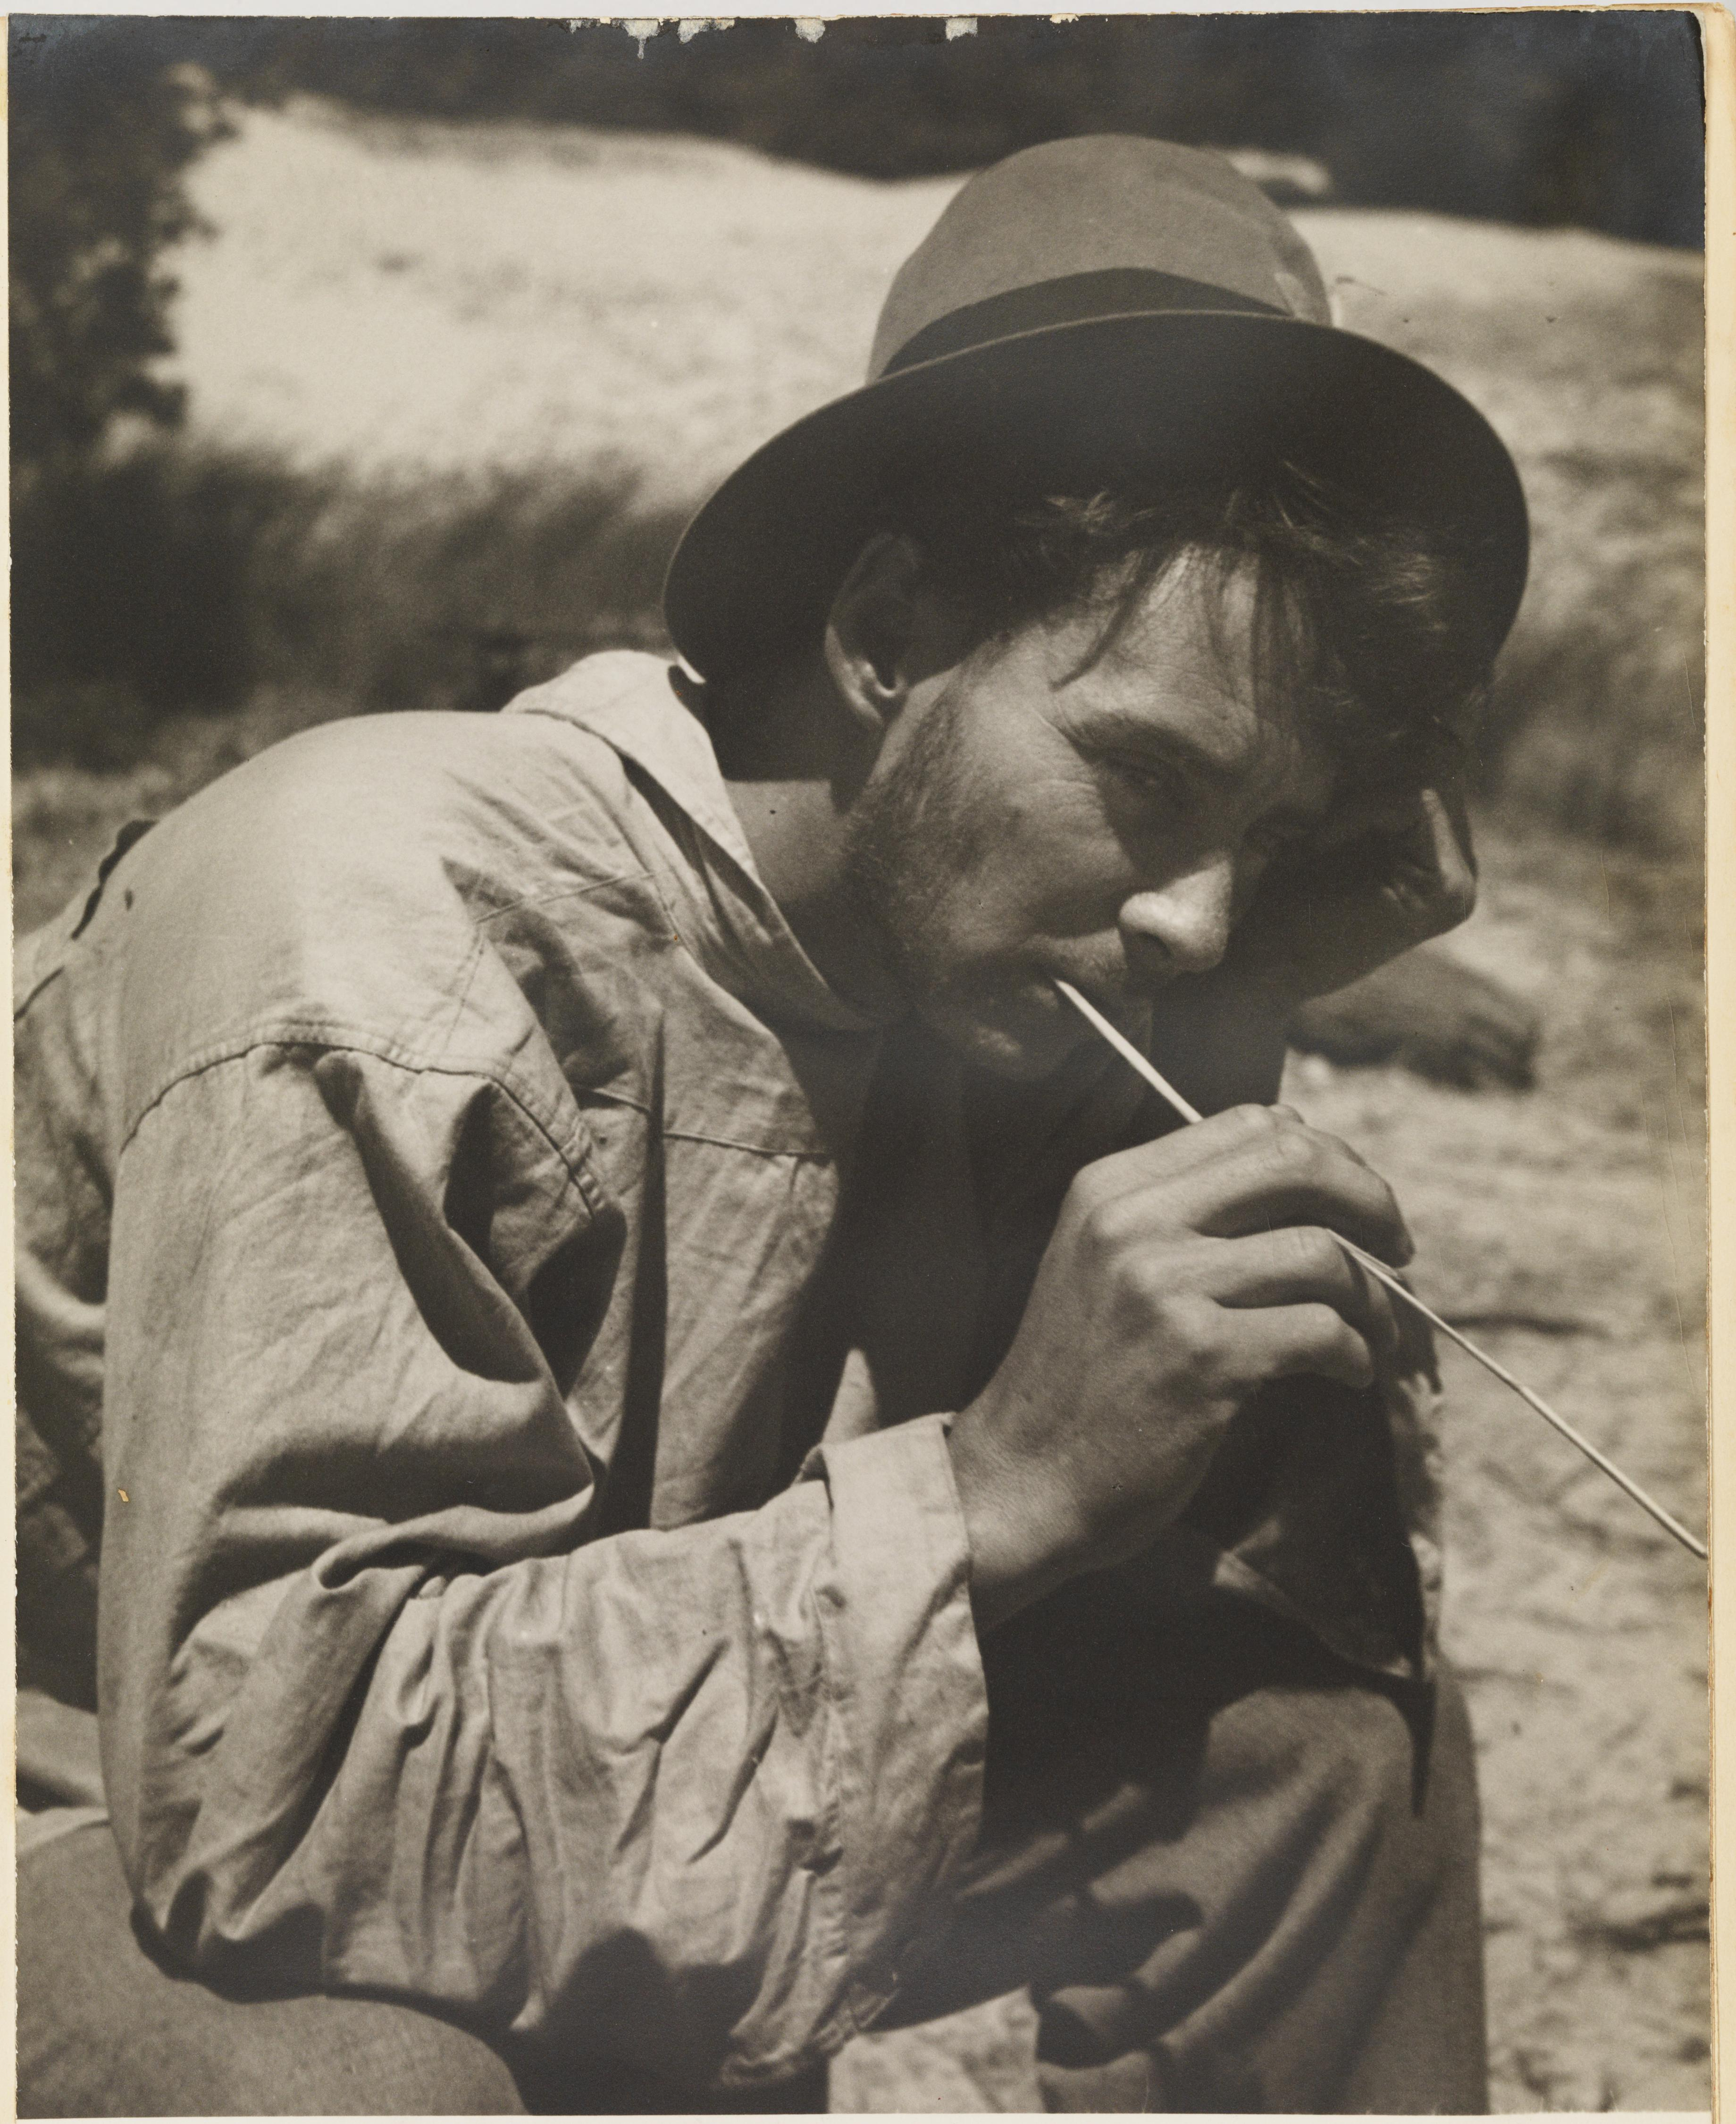 Max Dupain by Olive Cotton from Camping trips on Culburra Beach by Max Dupain and Olive Cotton